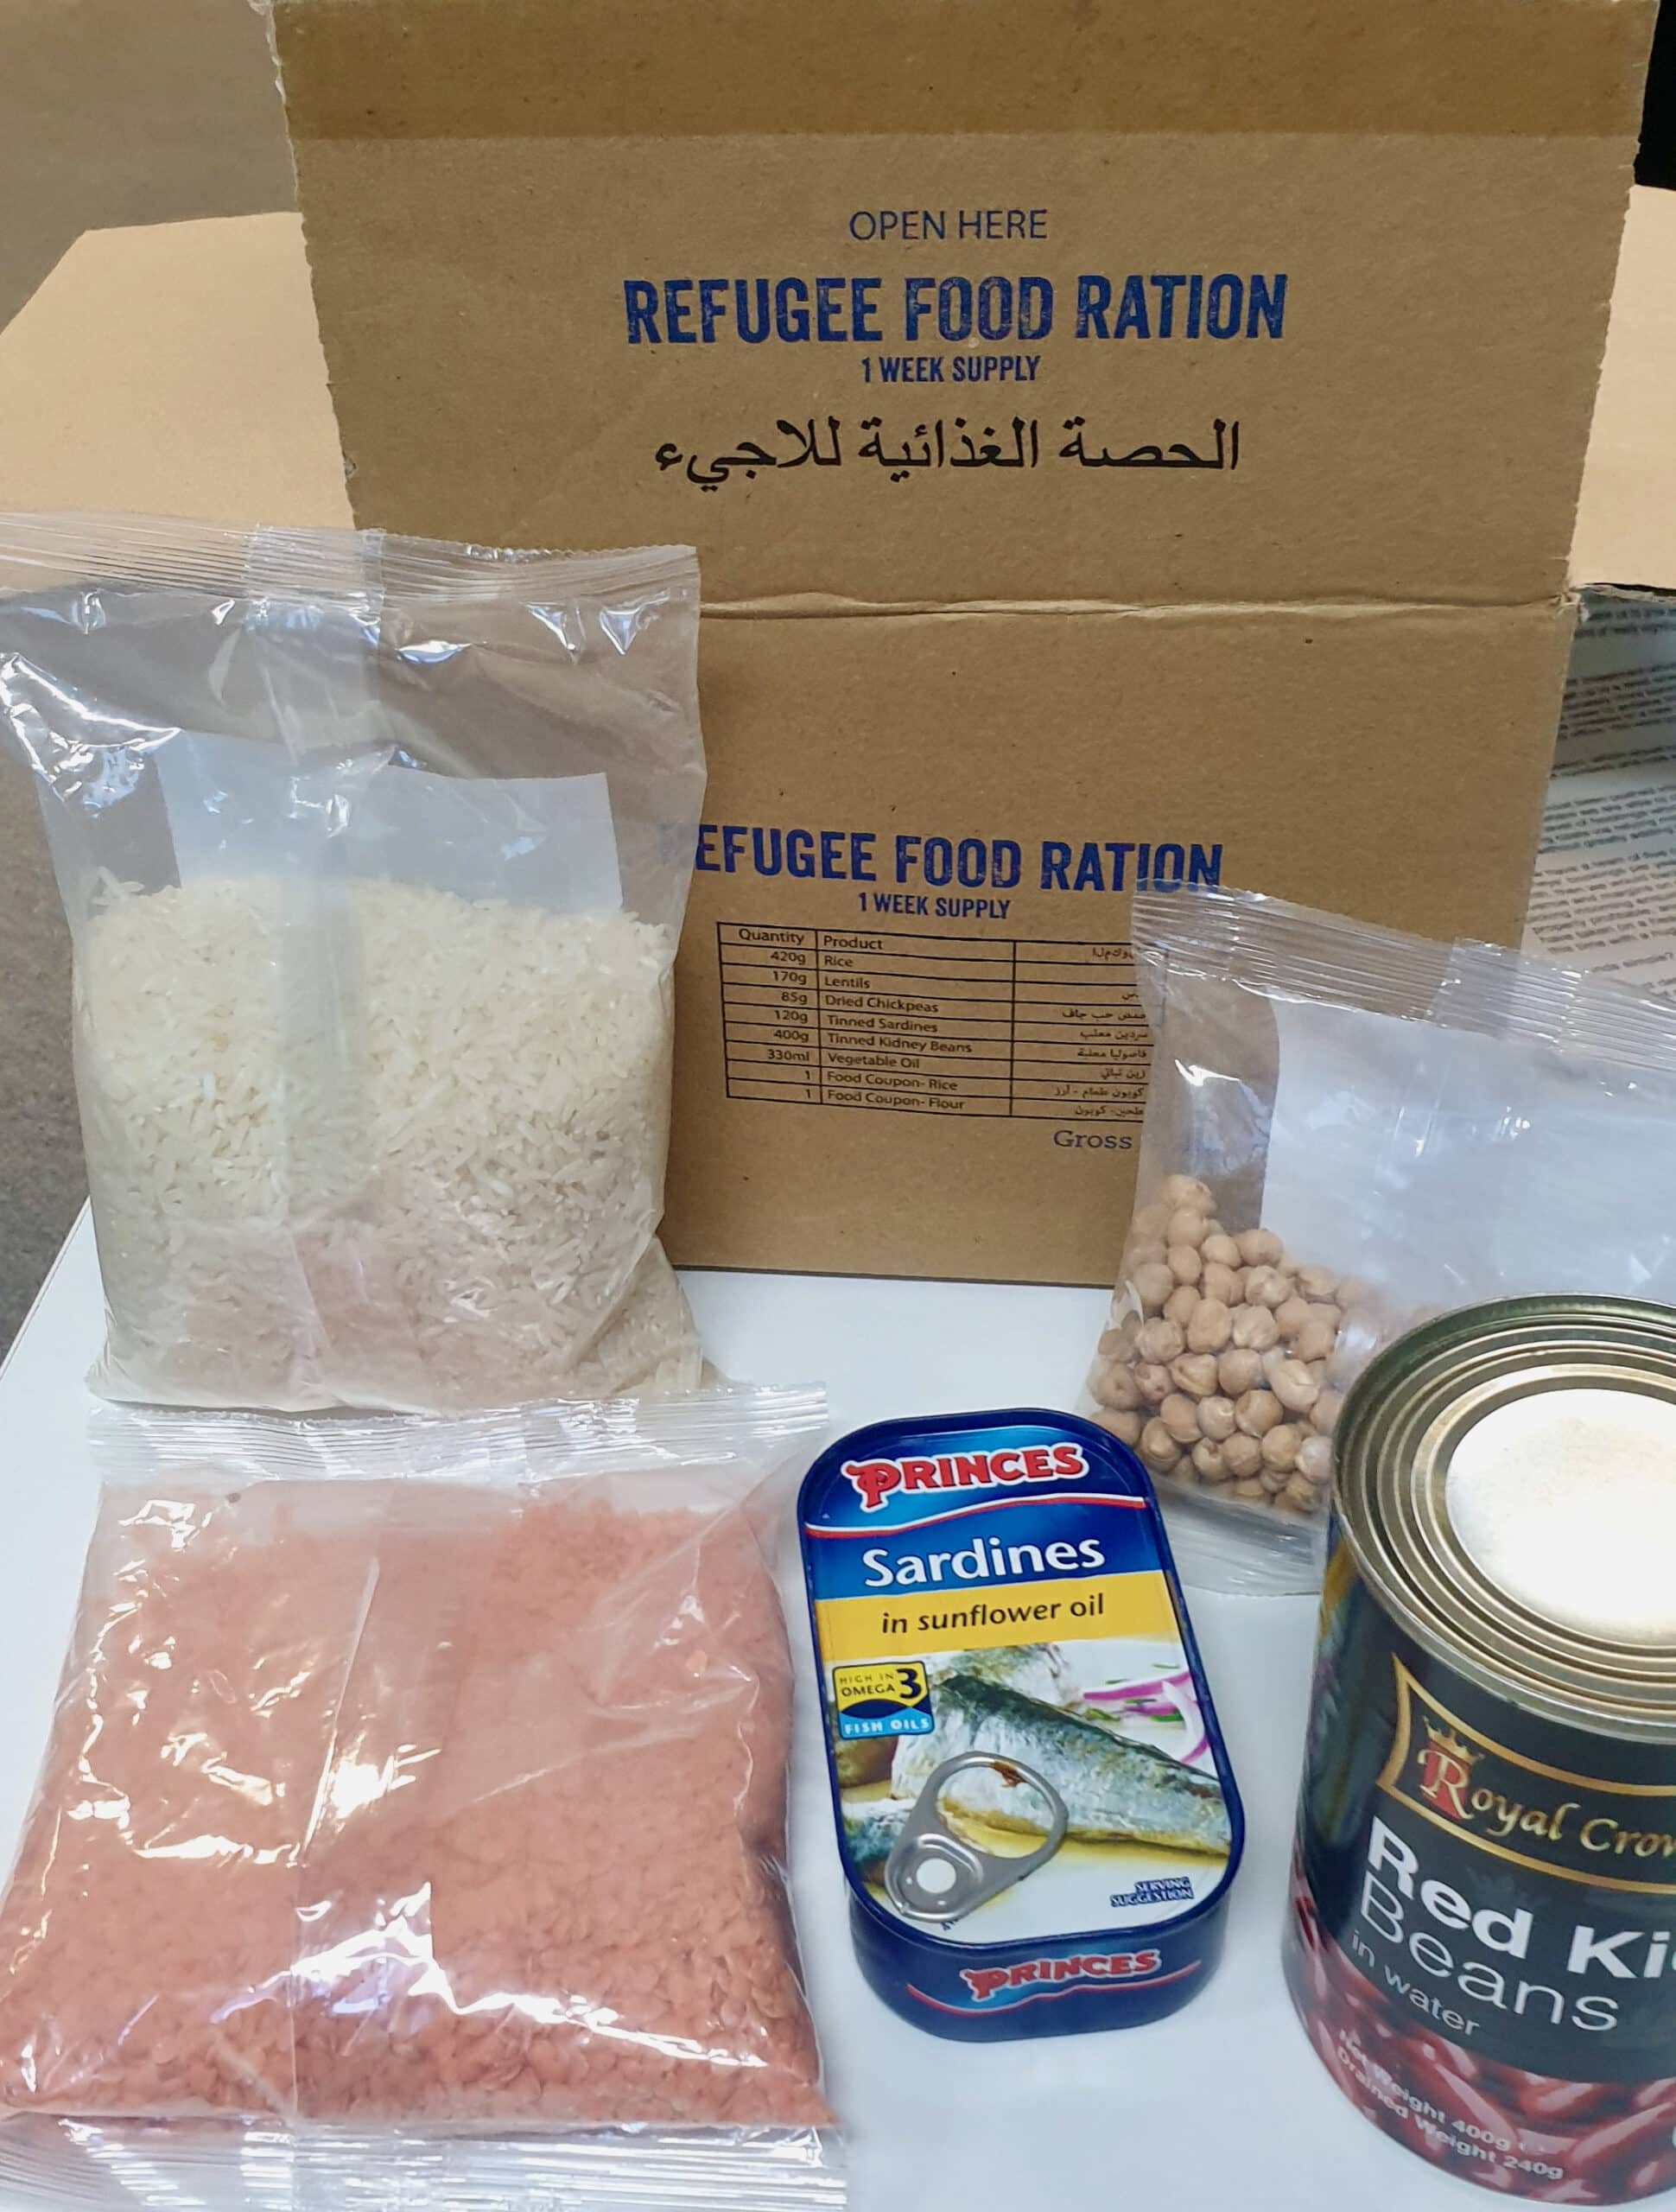 Food ration box provided for the Concern Worldwide Ration challenge in aid of refugees